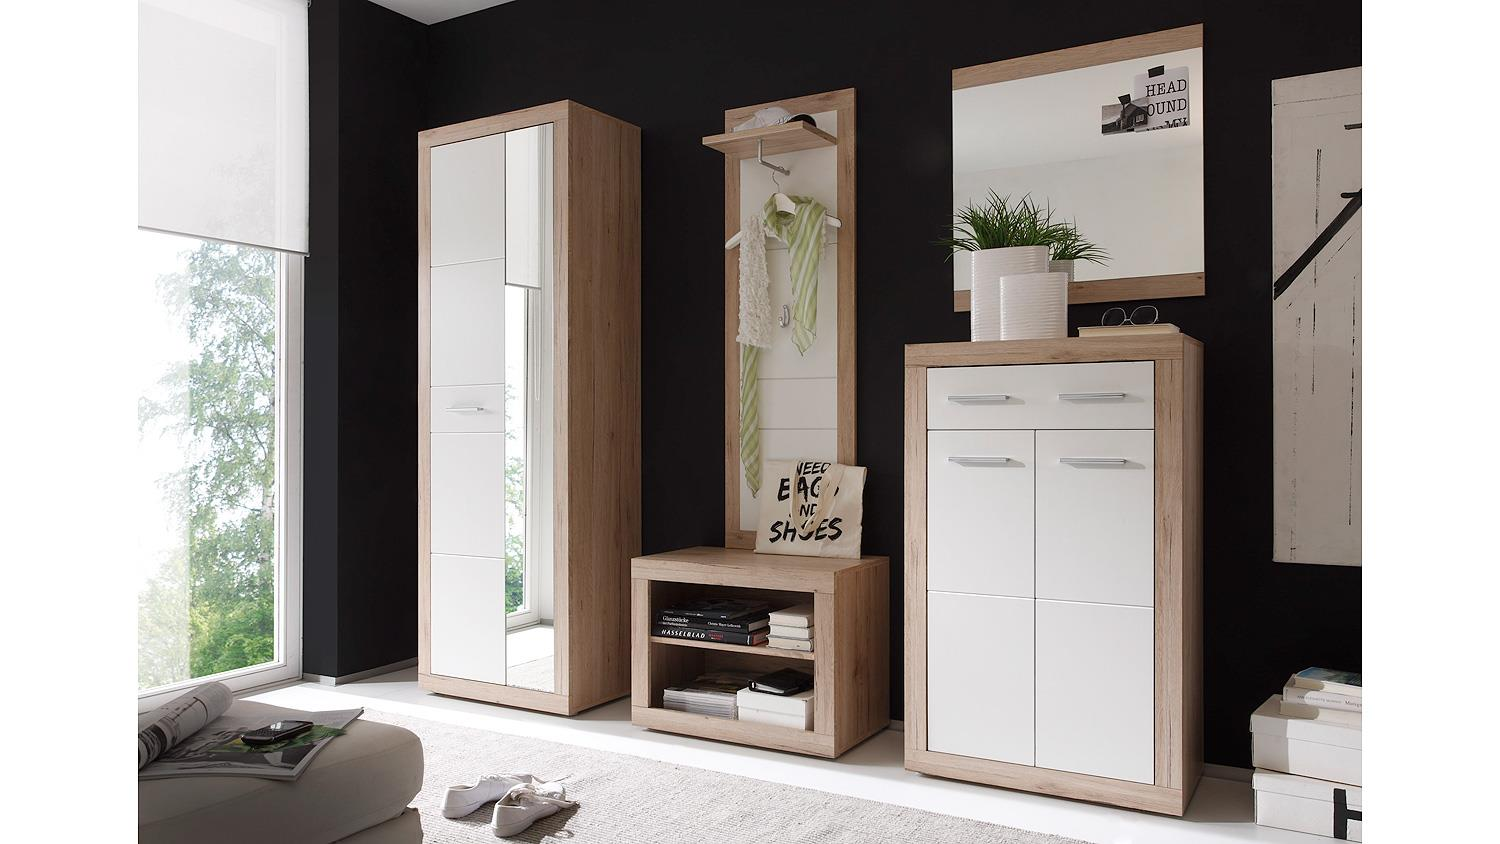 garderobe can can 5 spiegel in sonoma eiche wei 5 teilig. Black Bedroom Furniture Sets. Home Design Ideas